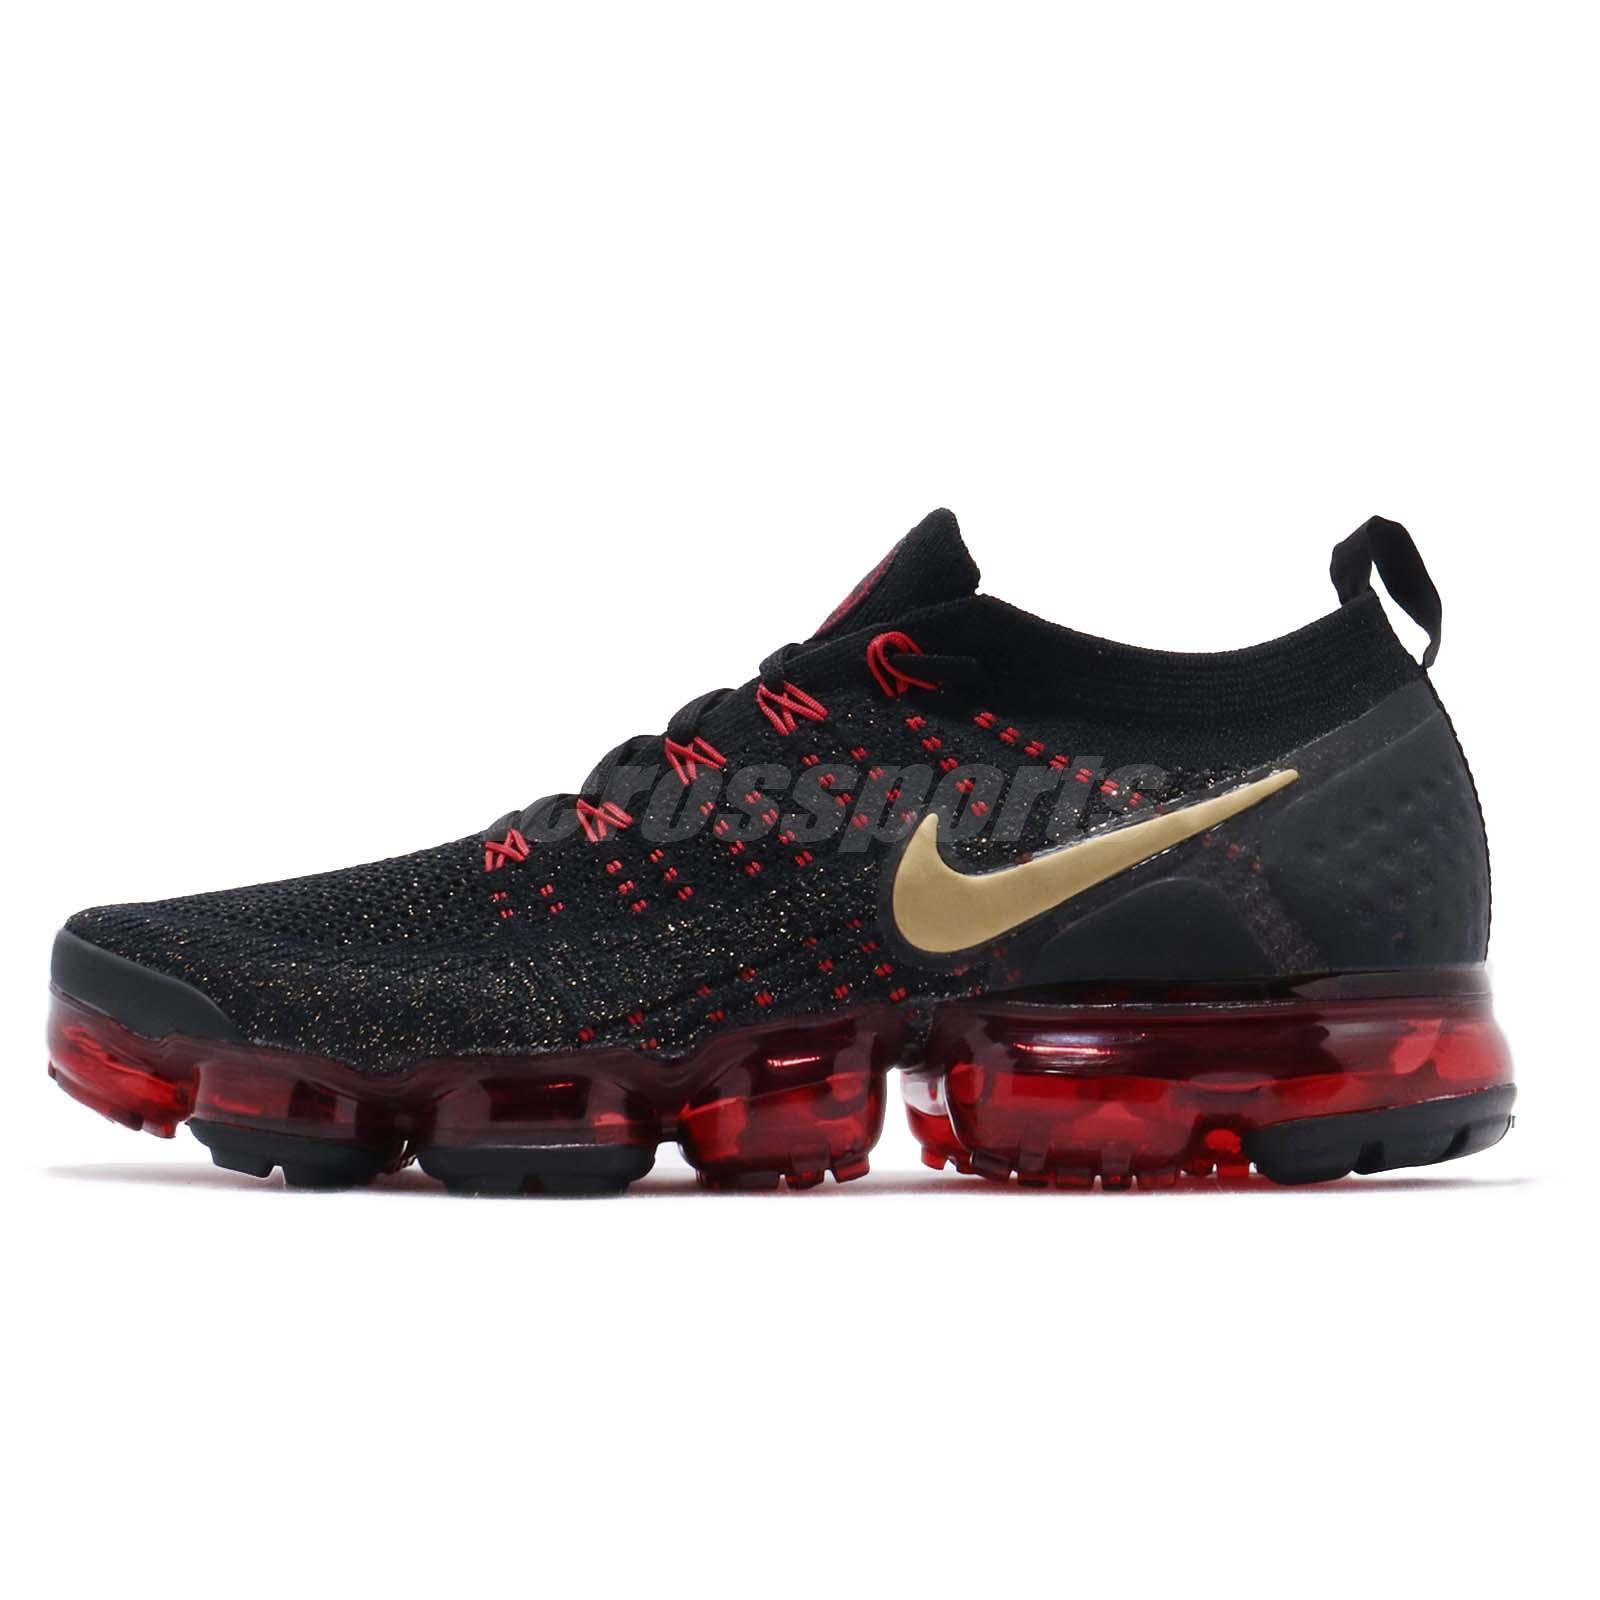 a80daf787fc2 Nike Air Vapormax FK 2 CNY Flyknit Chinese New Year Men Shoes Sneaker  BQ7036-001